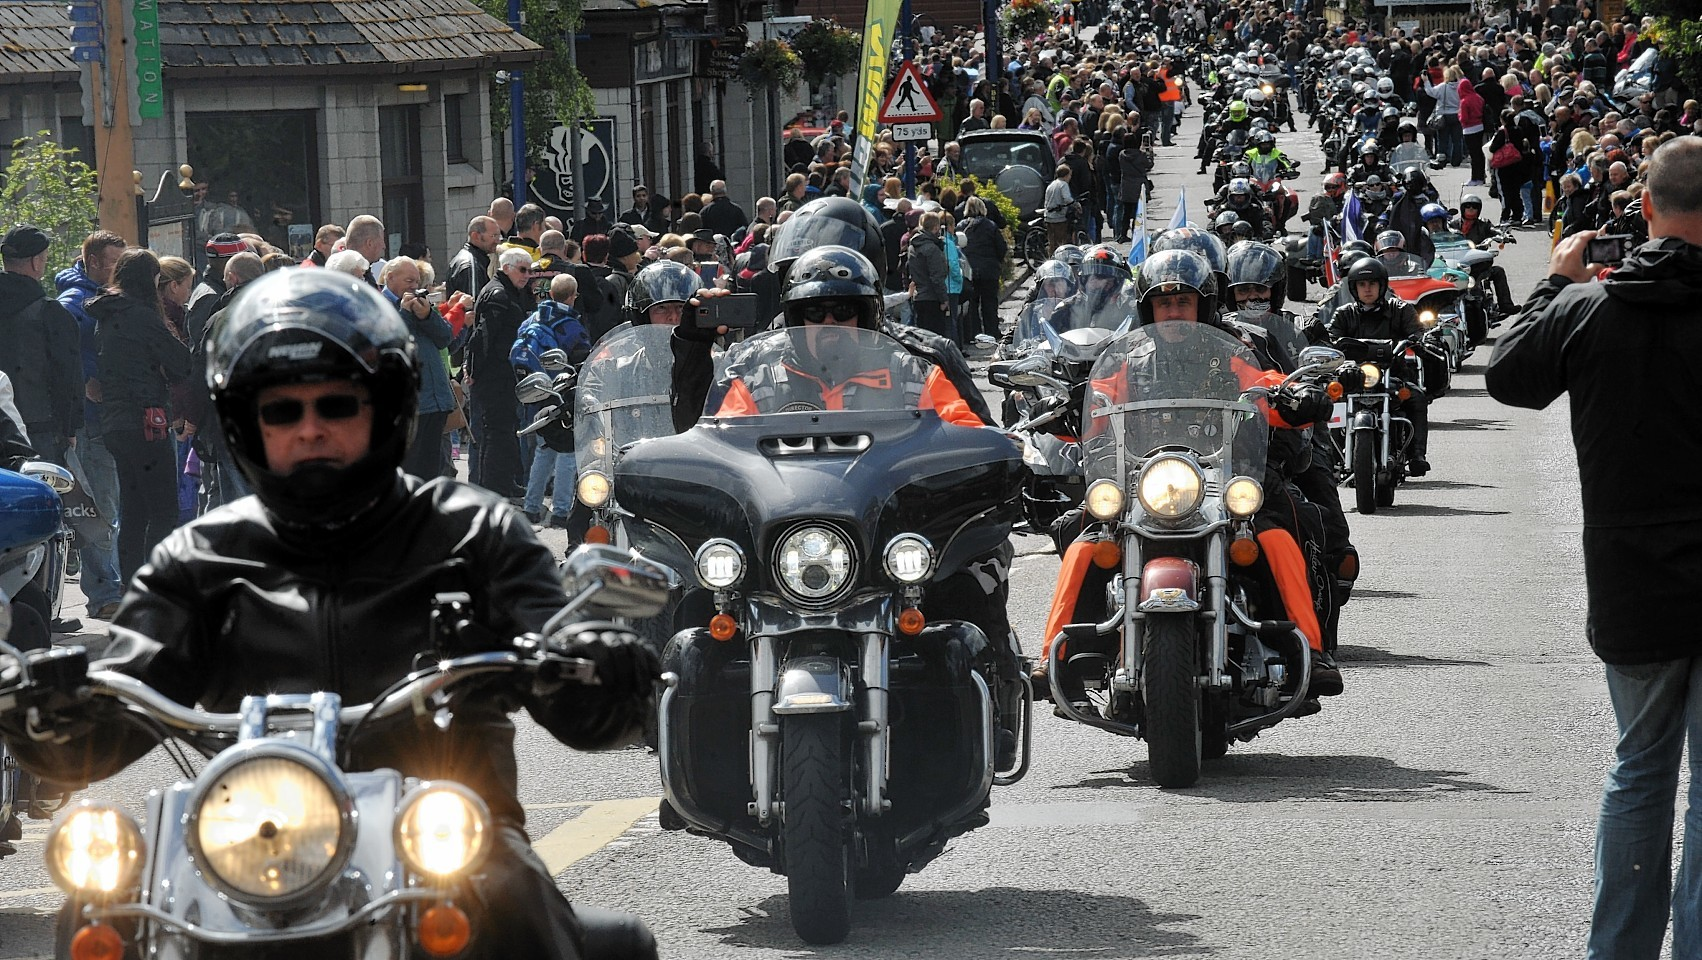 The Thunder in the Glens rally has grown year on year.